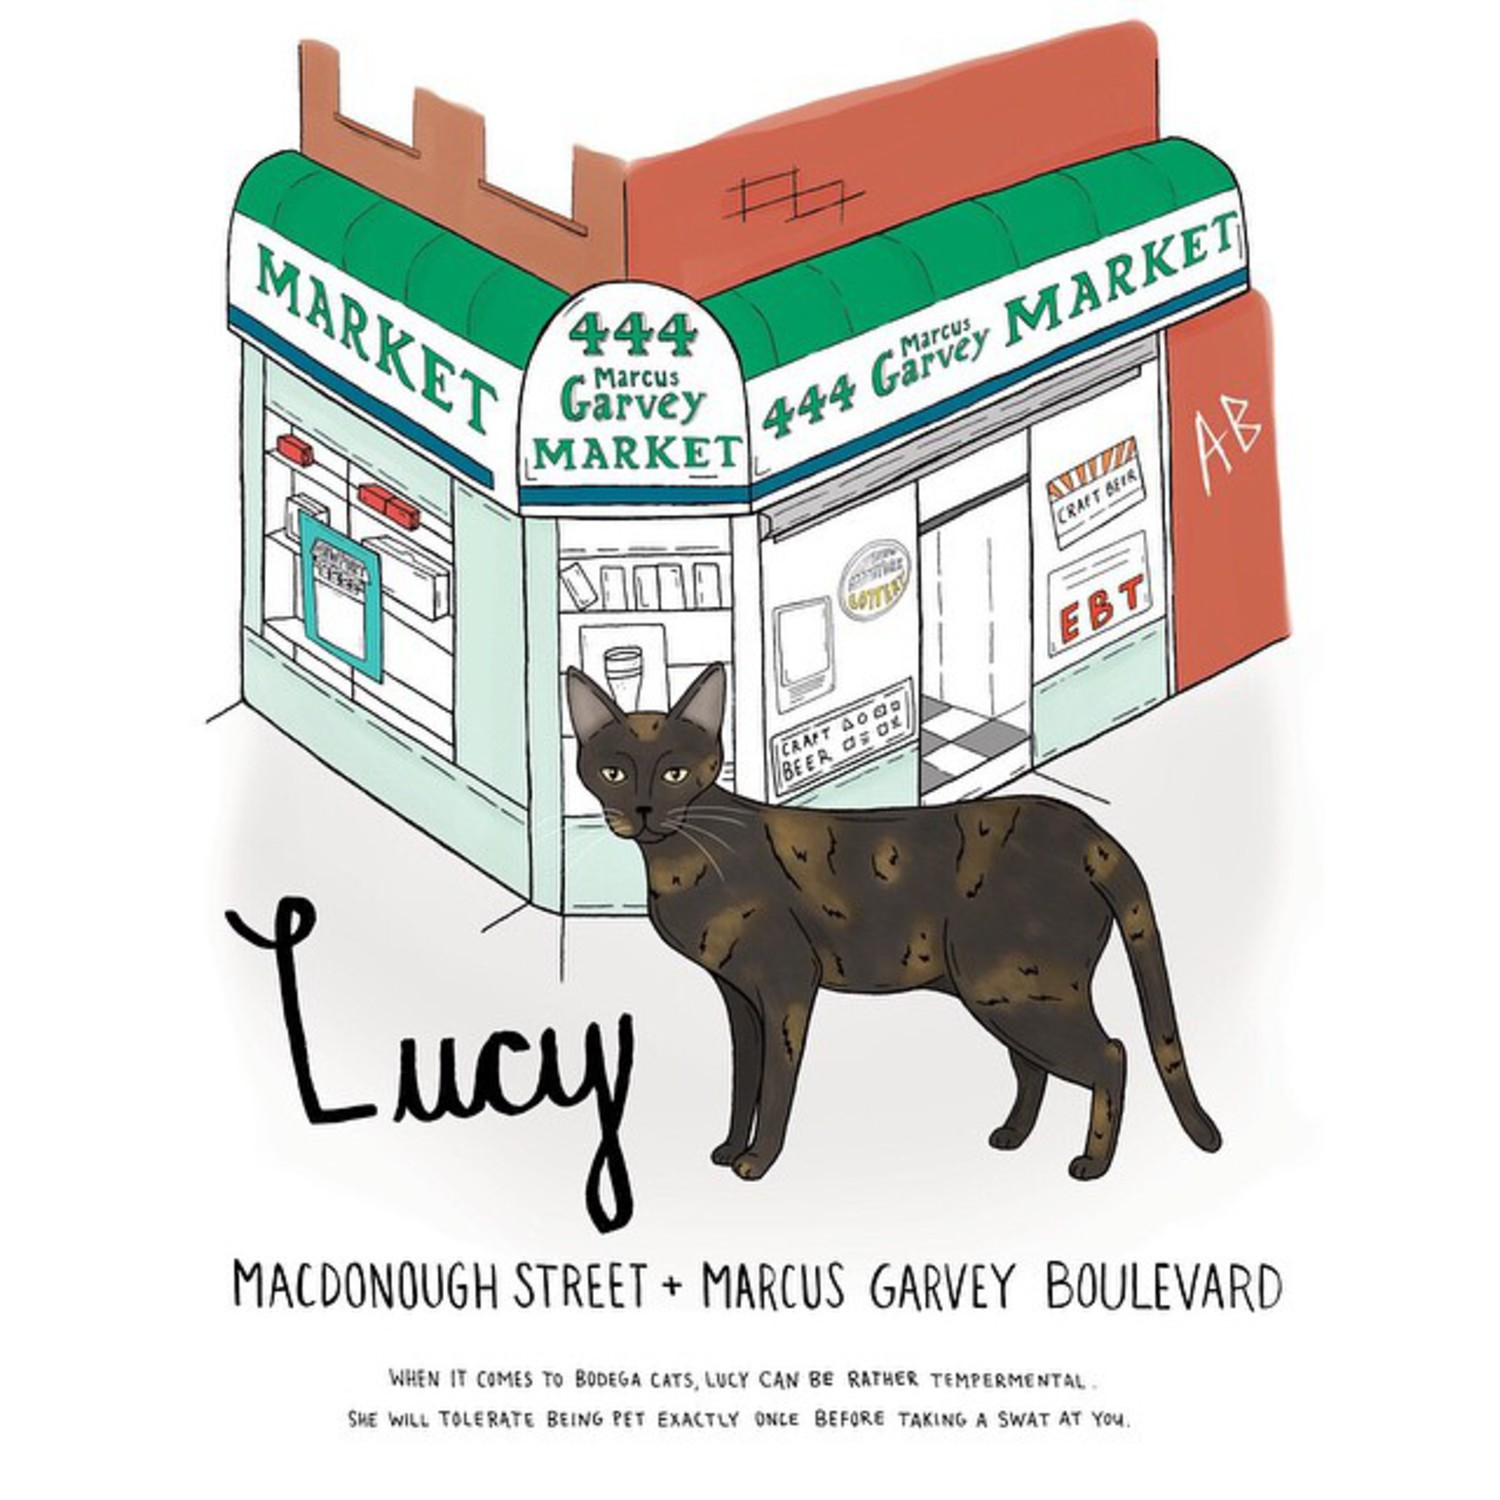 Lucy // Bed-Stuy #brooklynbodegacats #bodegacats #bodegacatsofinstagram #catsofinstagram #brooklyn #illustration